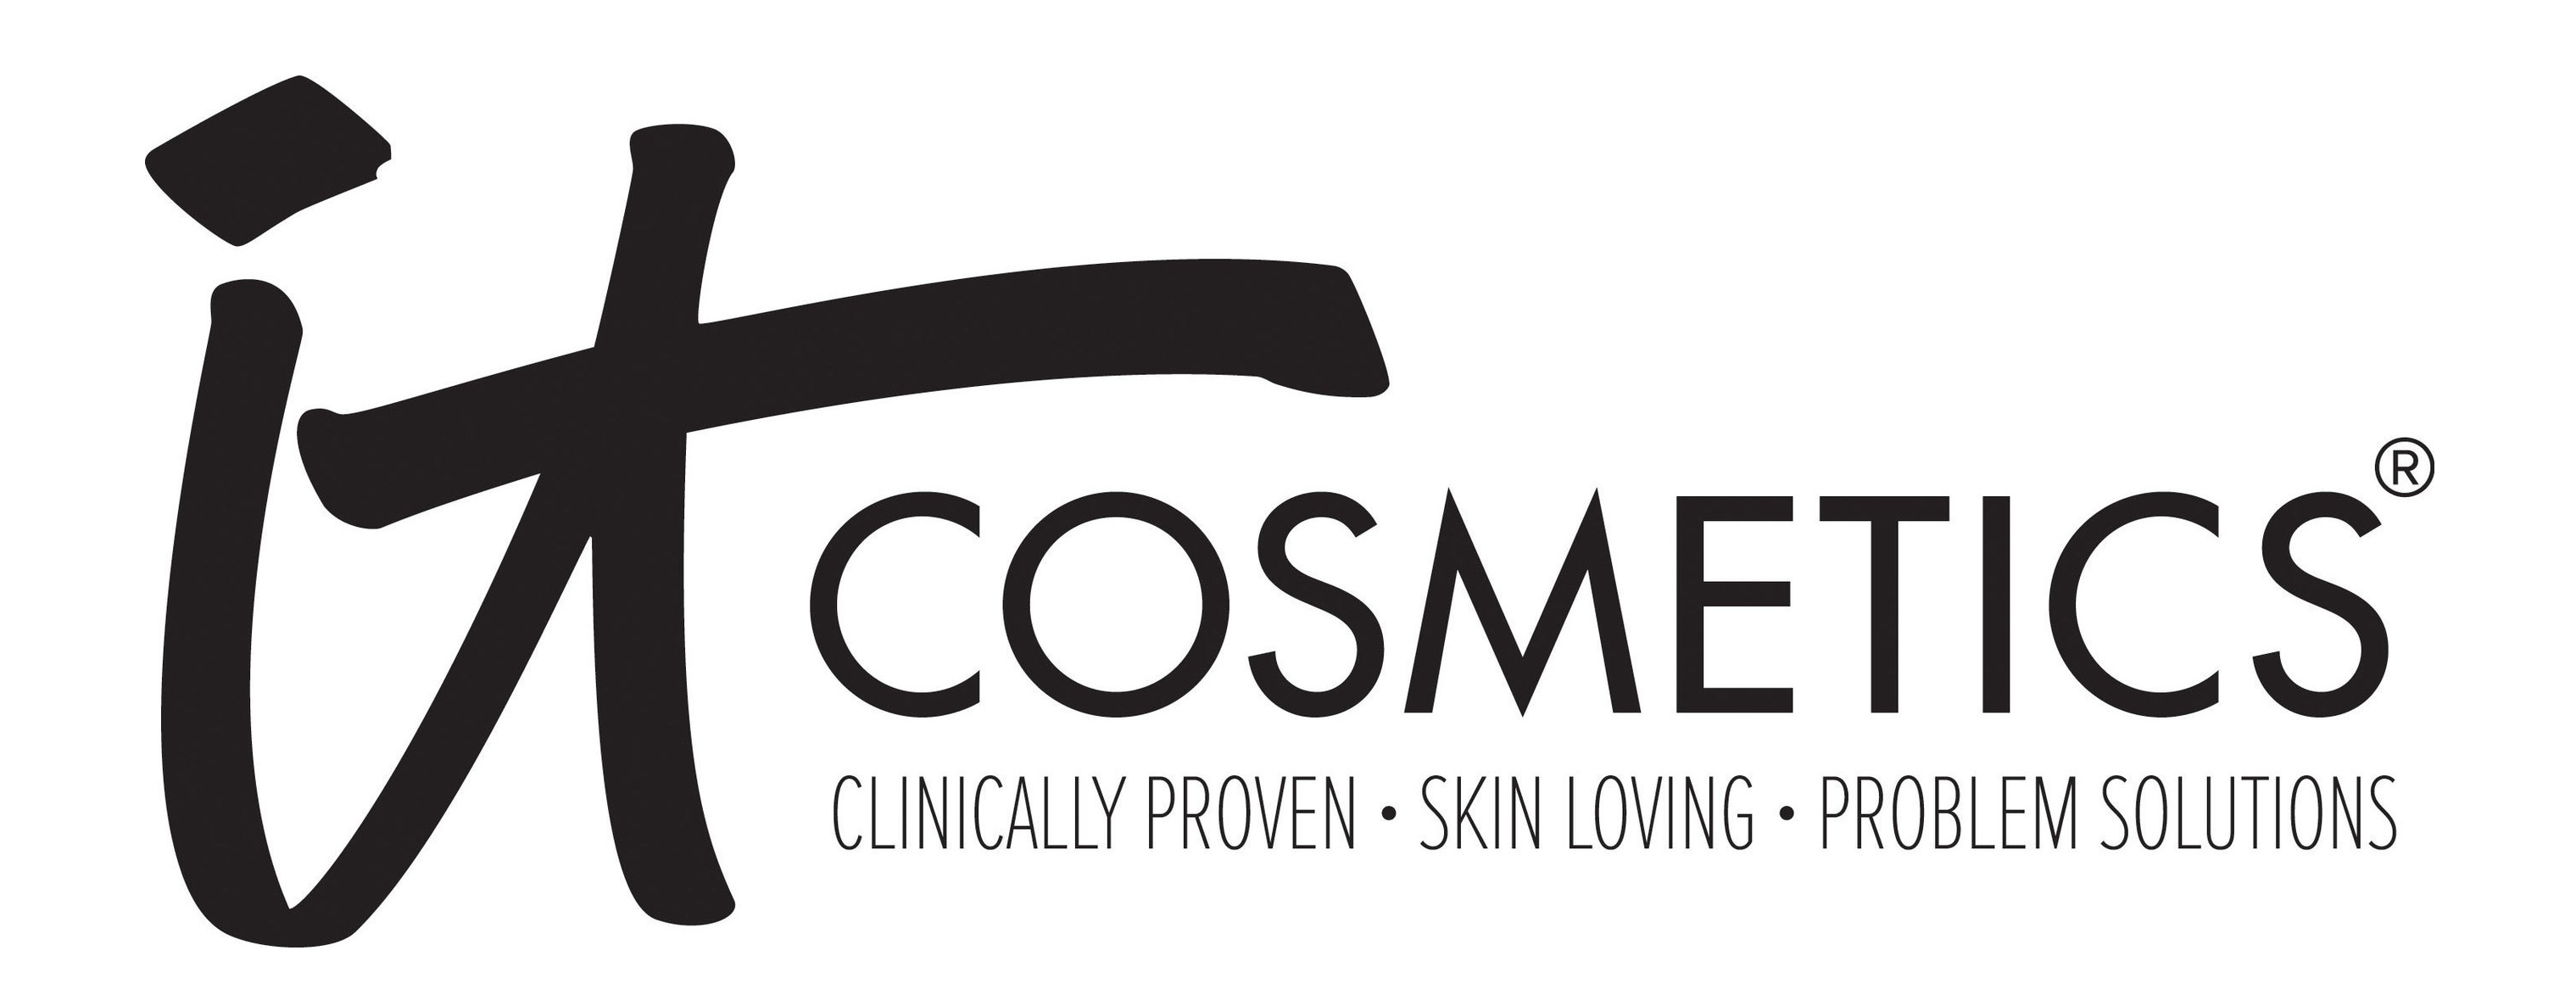 It cosmetics logo.